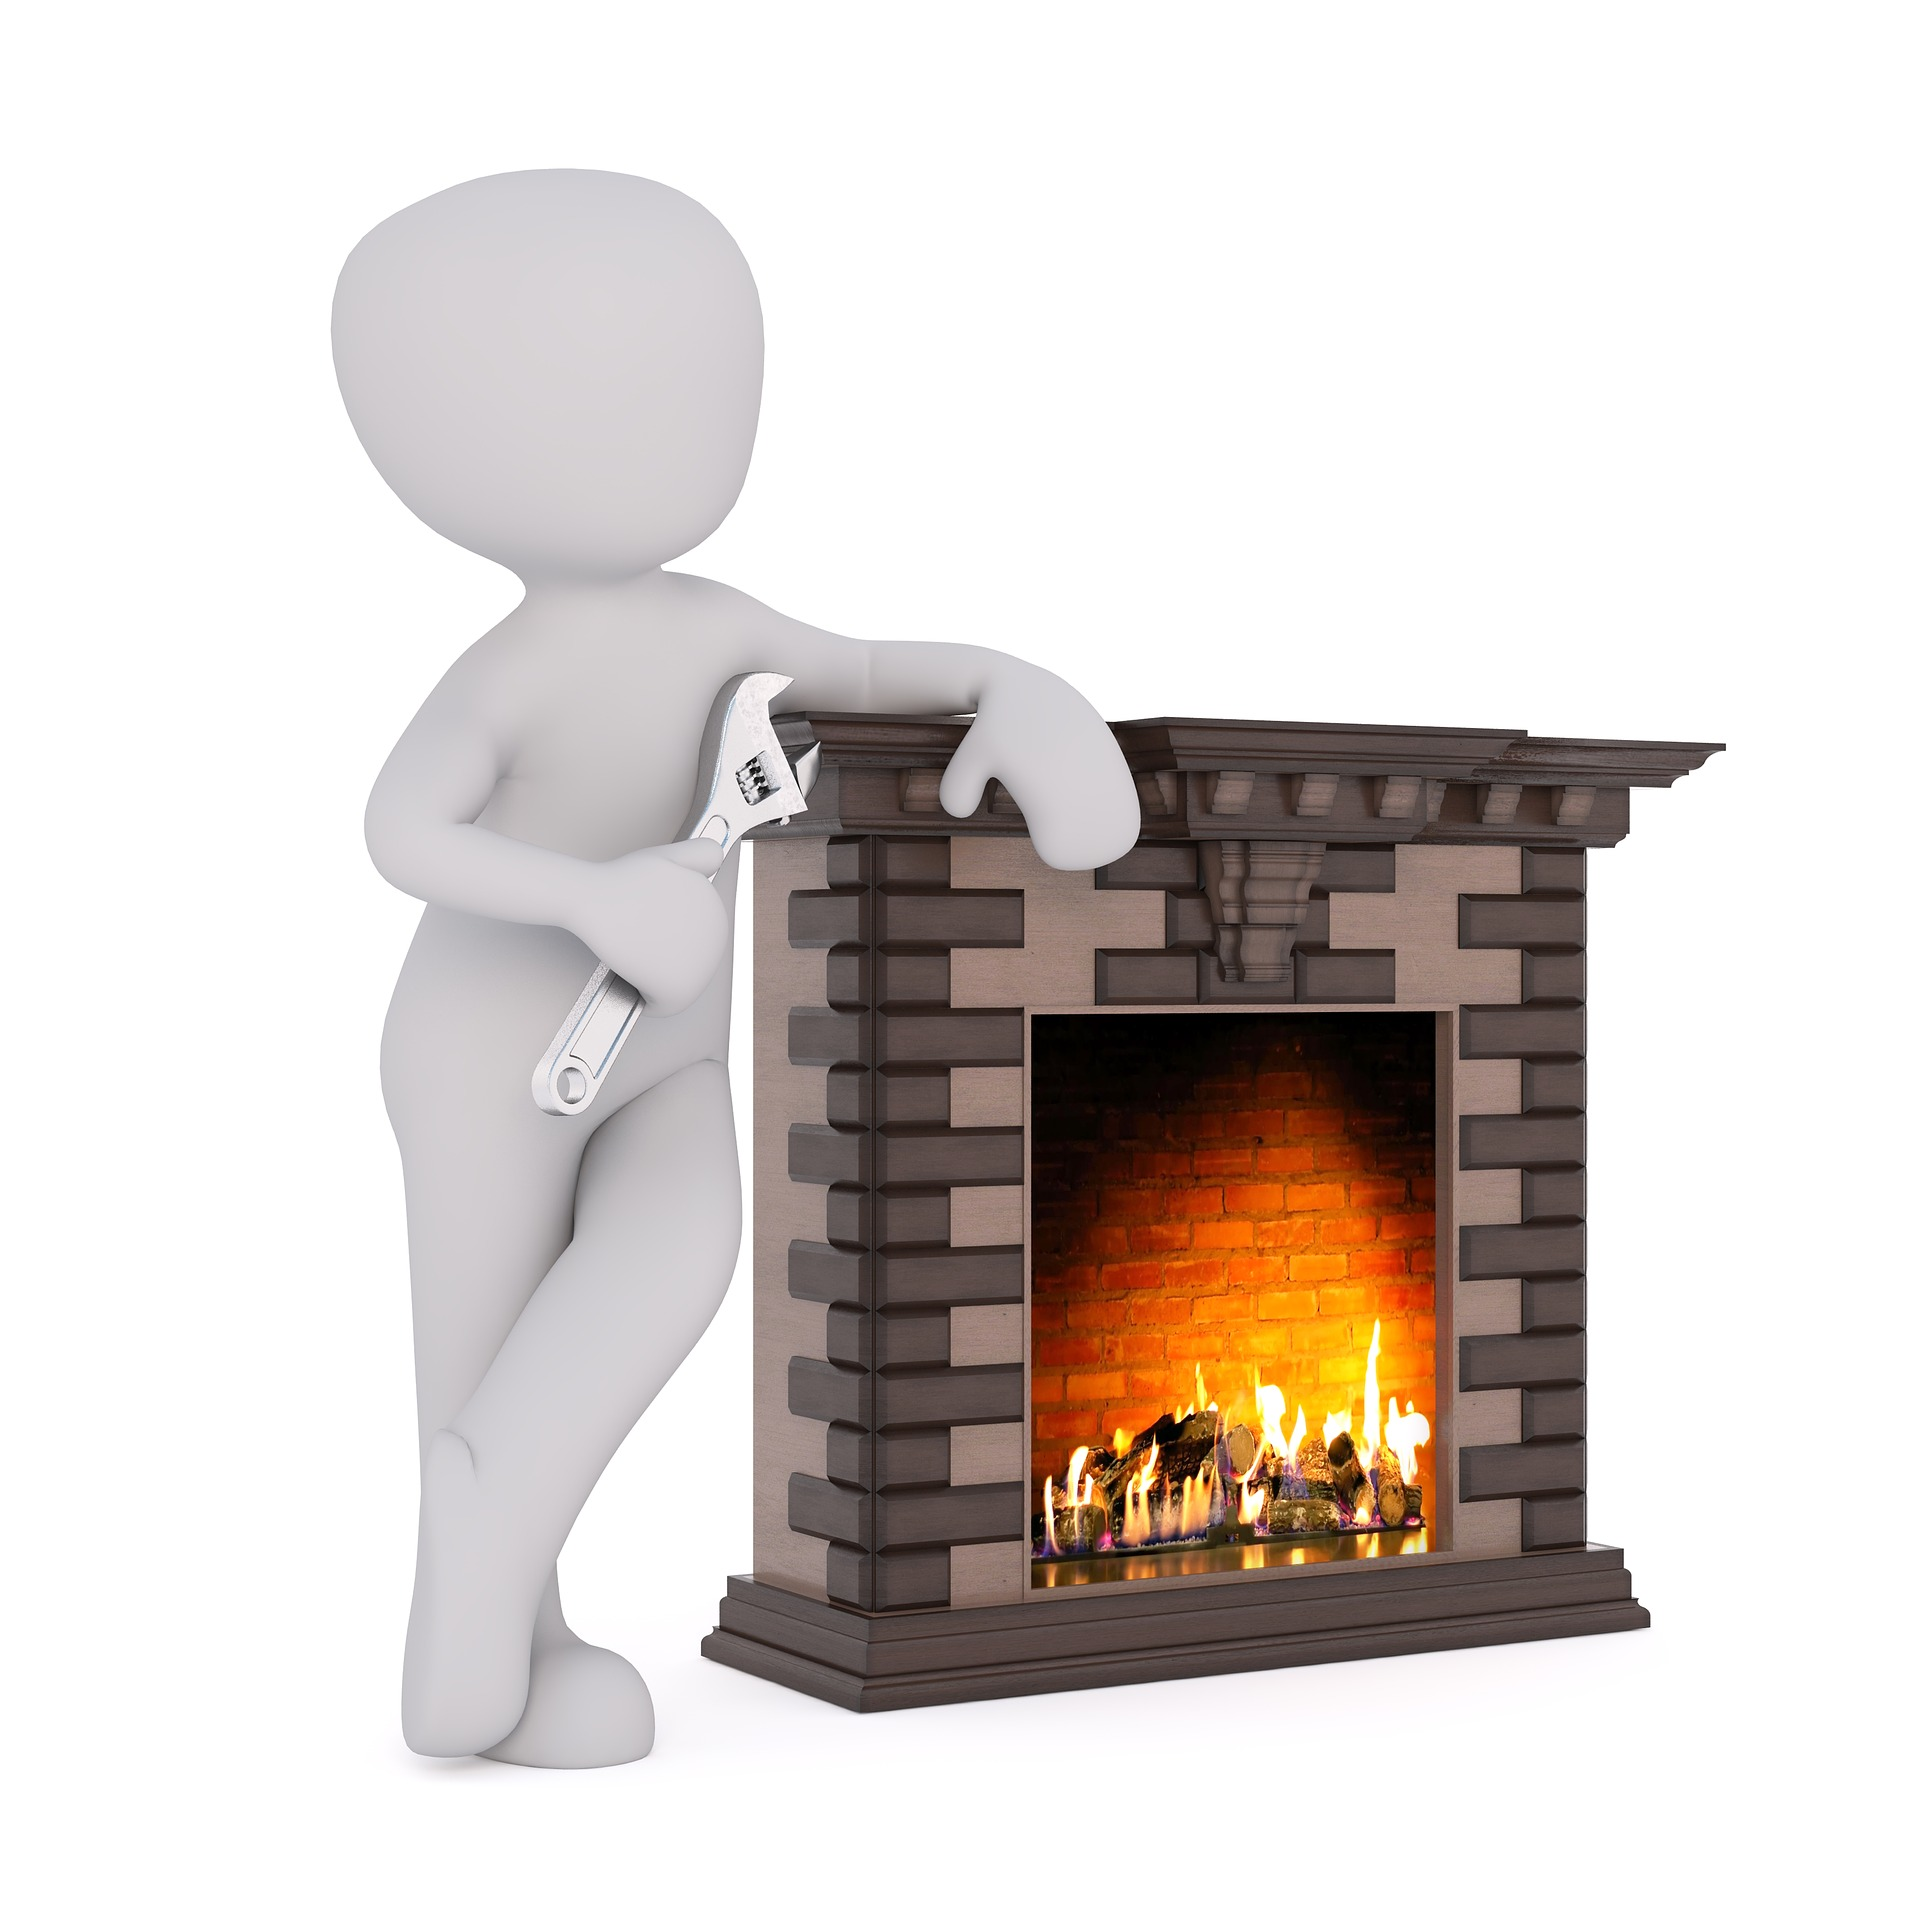 YOUR FIREPLACE OR WOOD STOVE